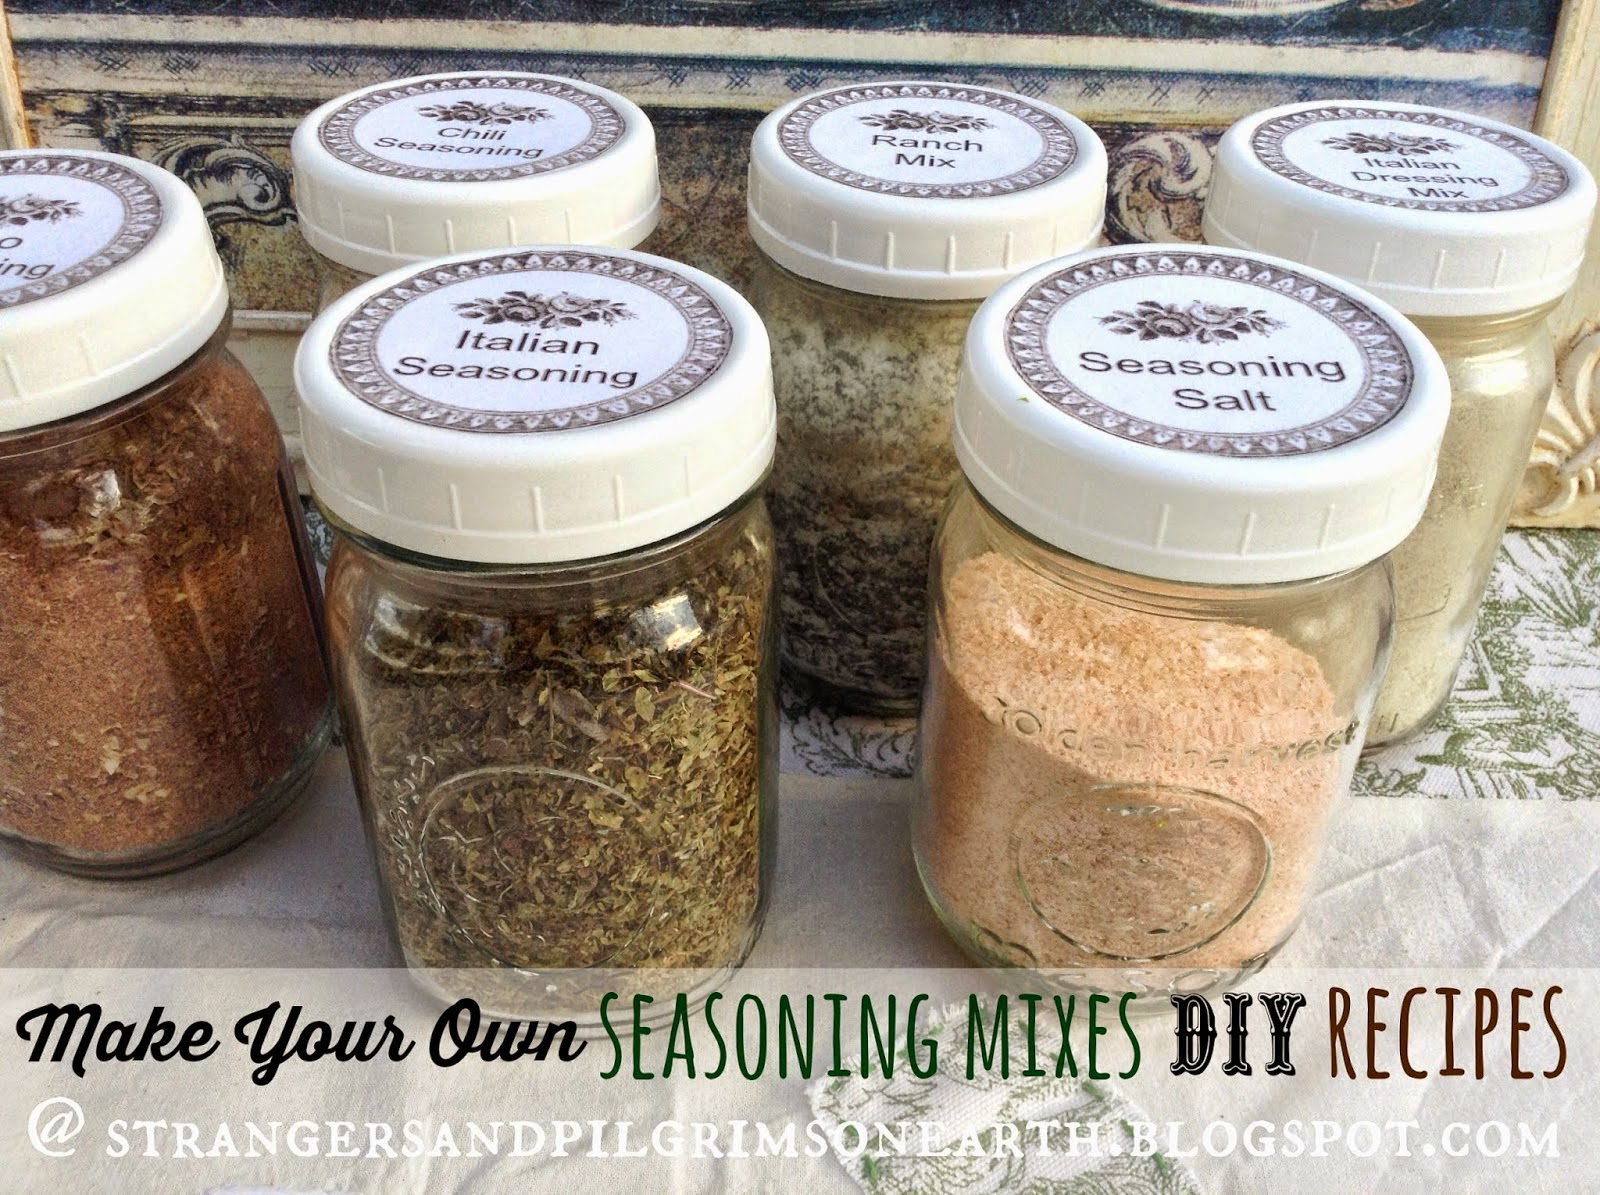 Make Your Own Seasoning Mixes DIY Kit